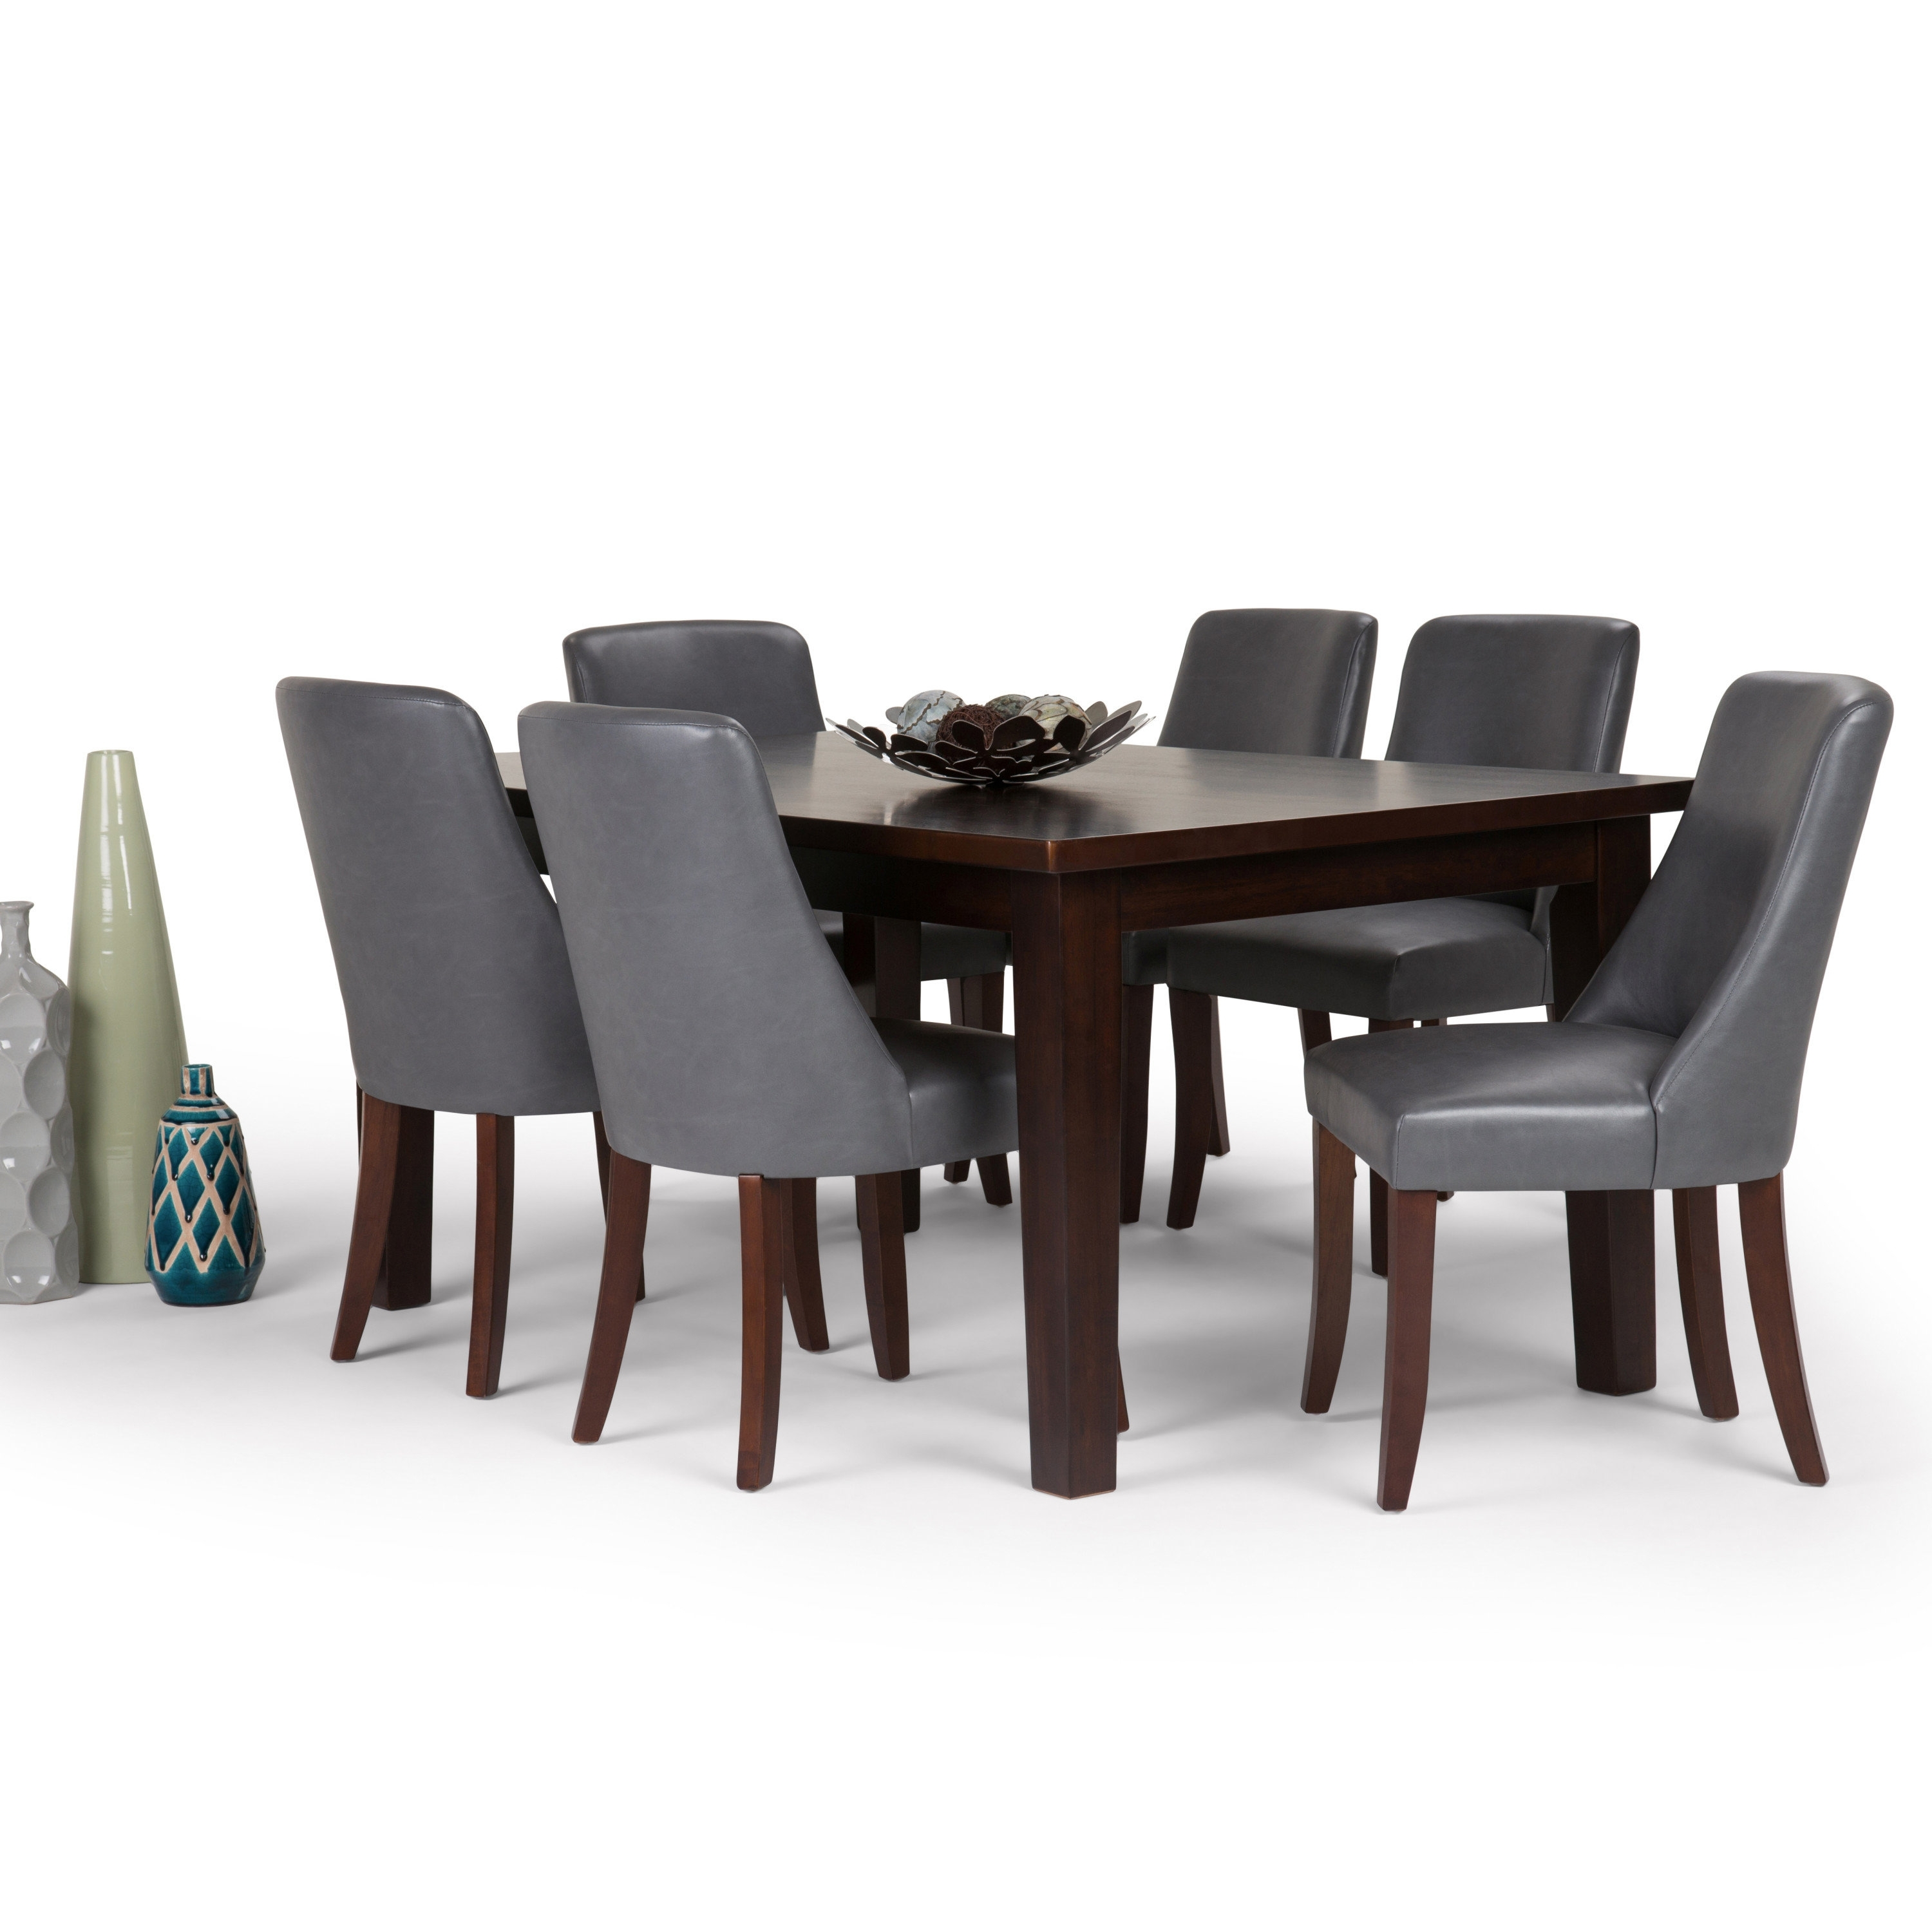 Widely Used Walden Upholstered Side Chairs In Simpli Home Walden 7 Piece Dining Set (View 20 of 20)